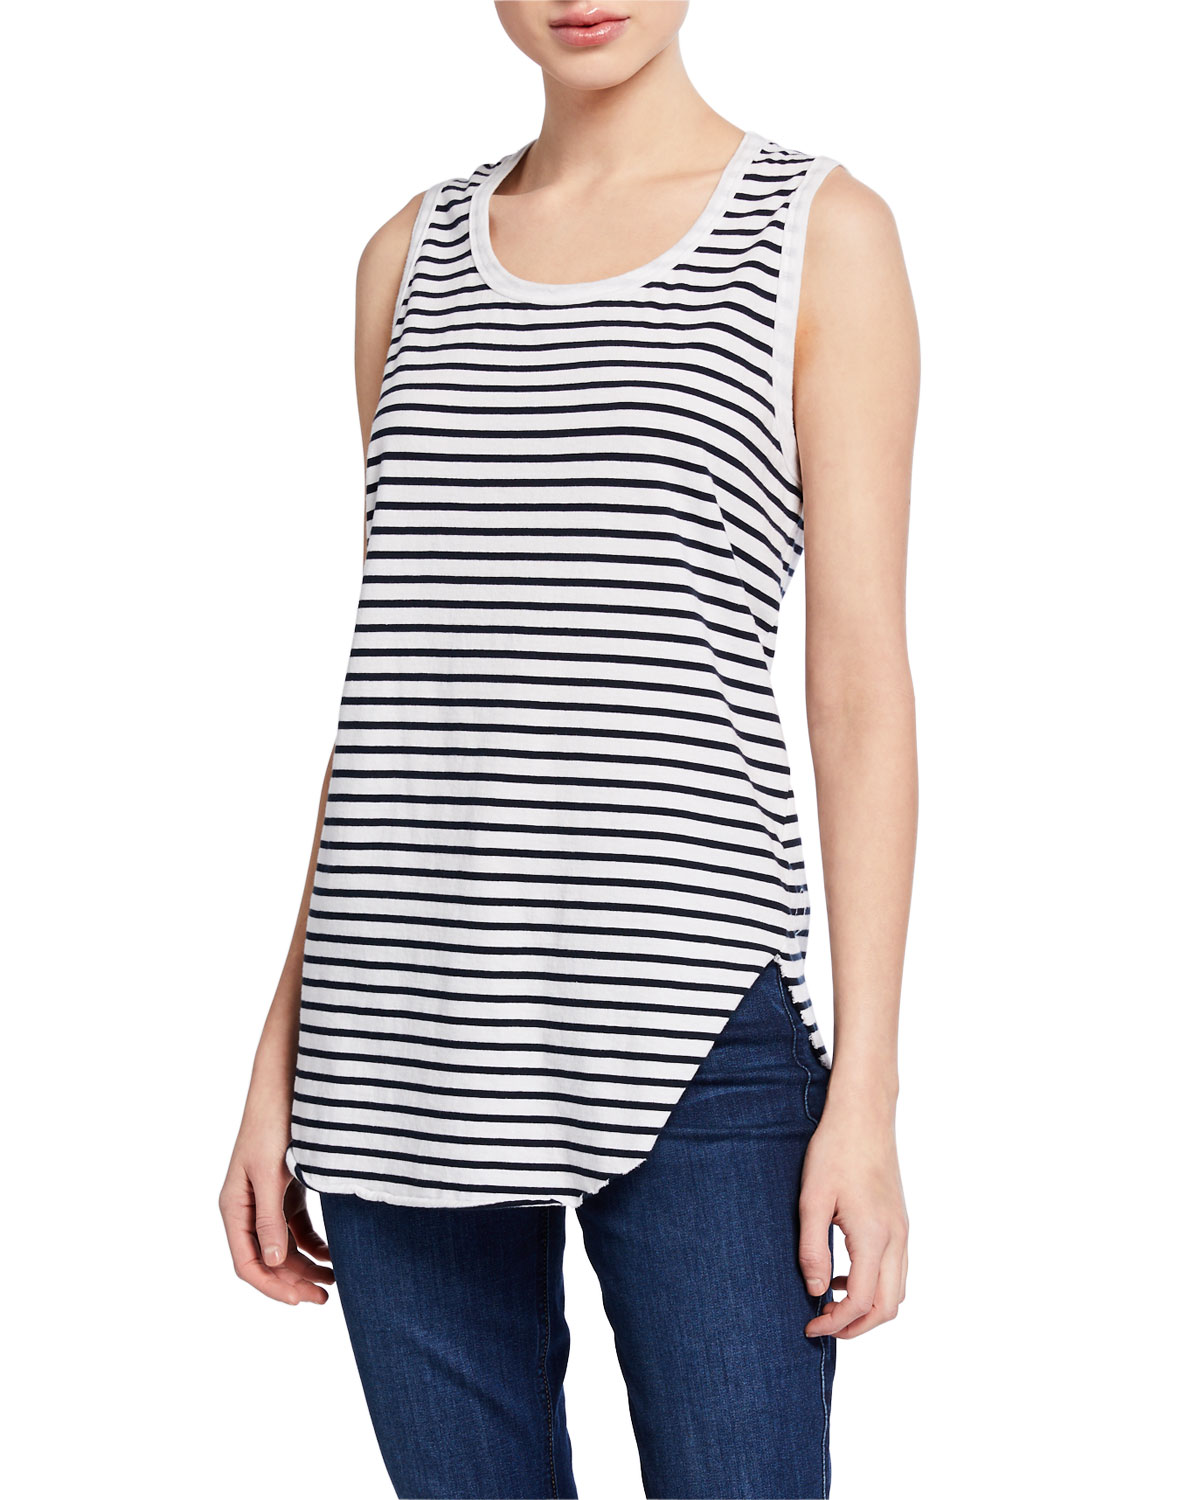 Frank & Eileen Tee Lab Striped Scoop-Neck Relaxed Asymmetric Tank